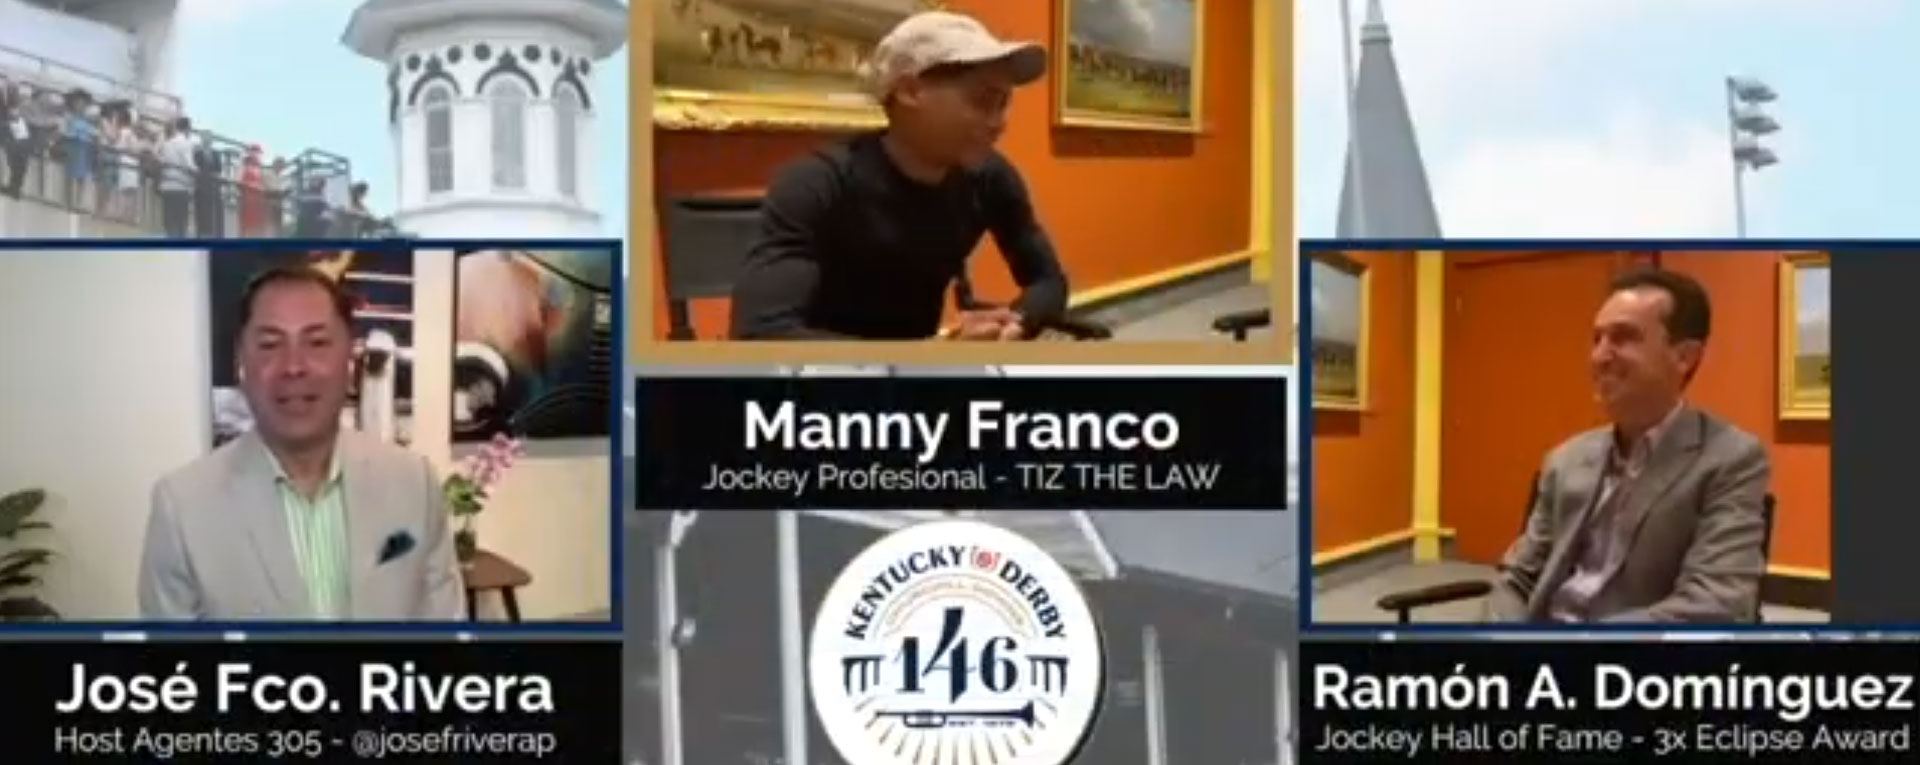 Manuel Franco: Riding High on Waves of Support